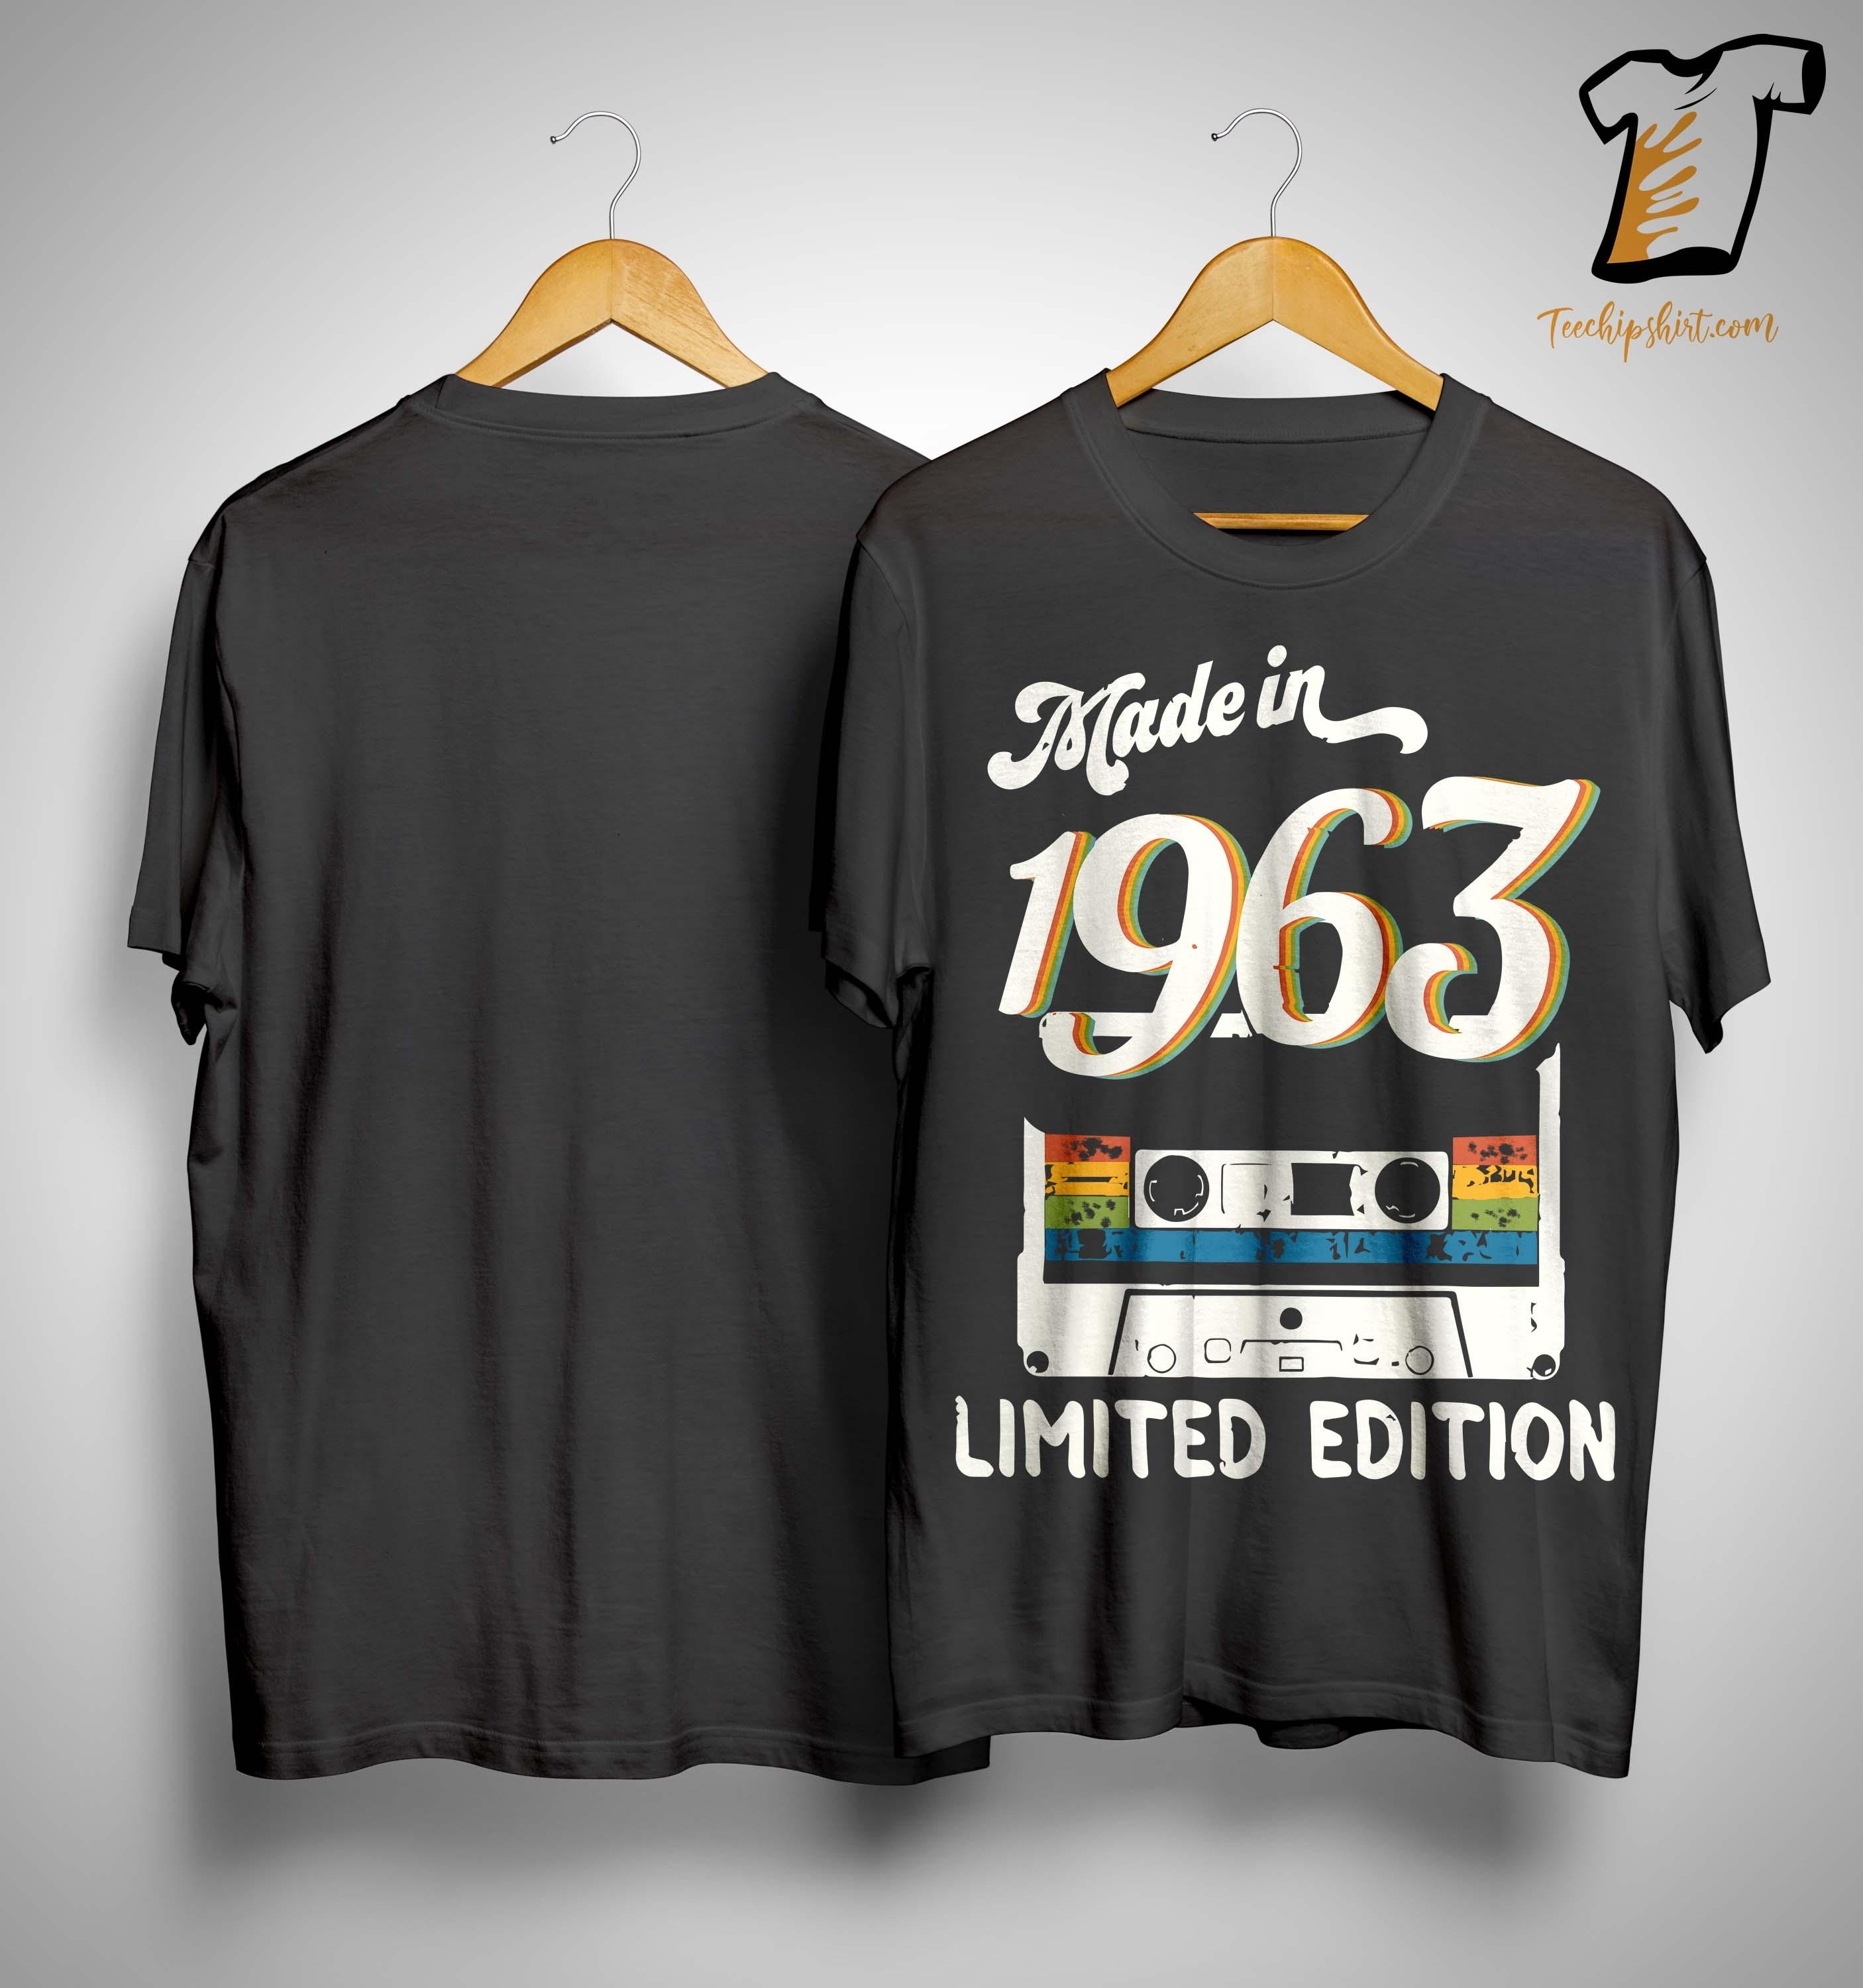 Video Tape Made In 1963 Limited Edition Shirt